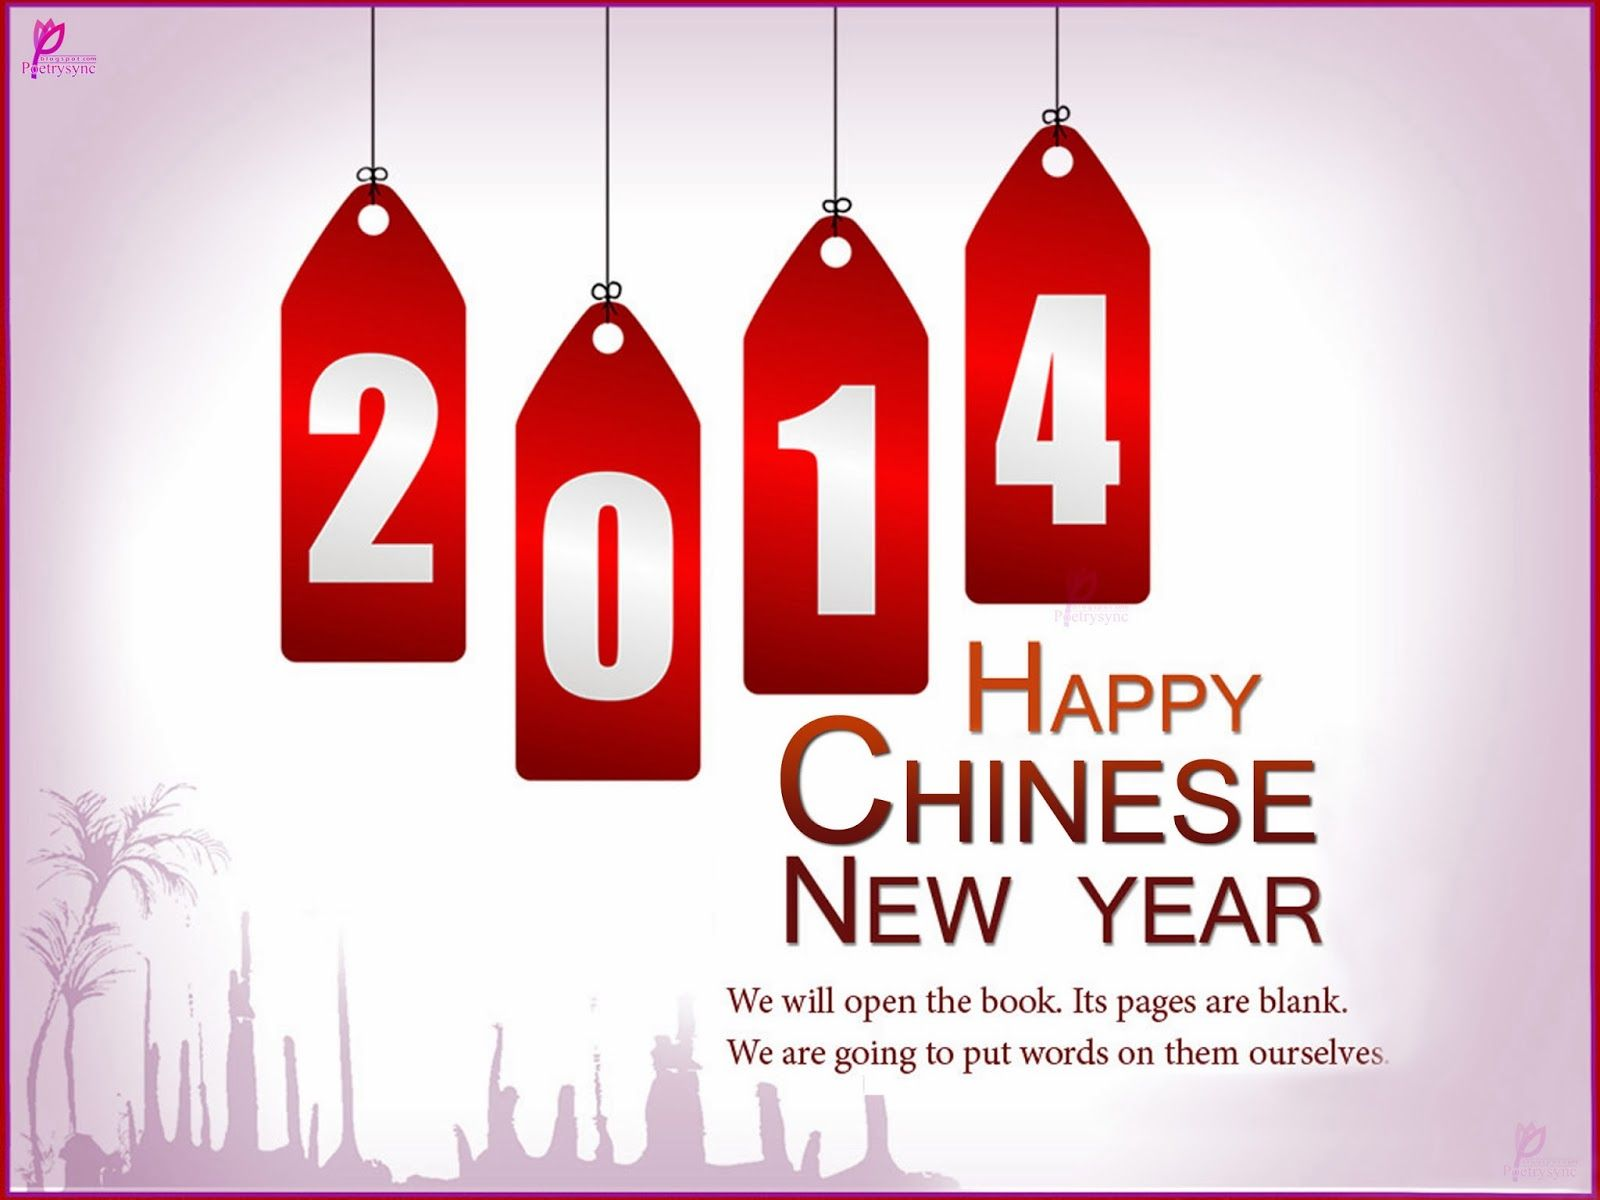 Chinese New Year Wishes Quotes And Message Image Lunar Tet New Year Hd Wallpapers Chinese New Year Wishes New Year Wishes Quotes New Year Greetings Quotes